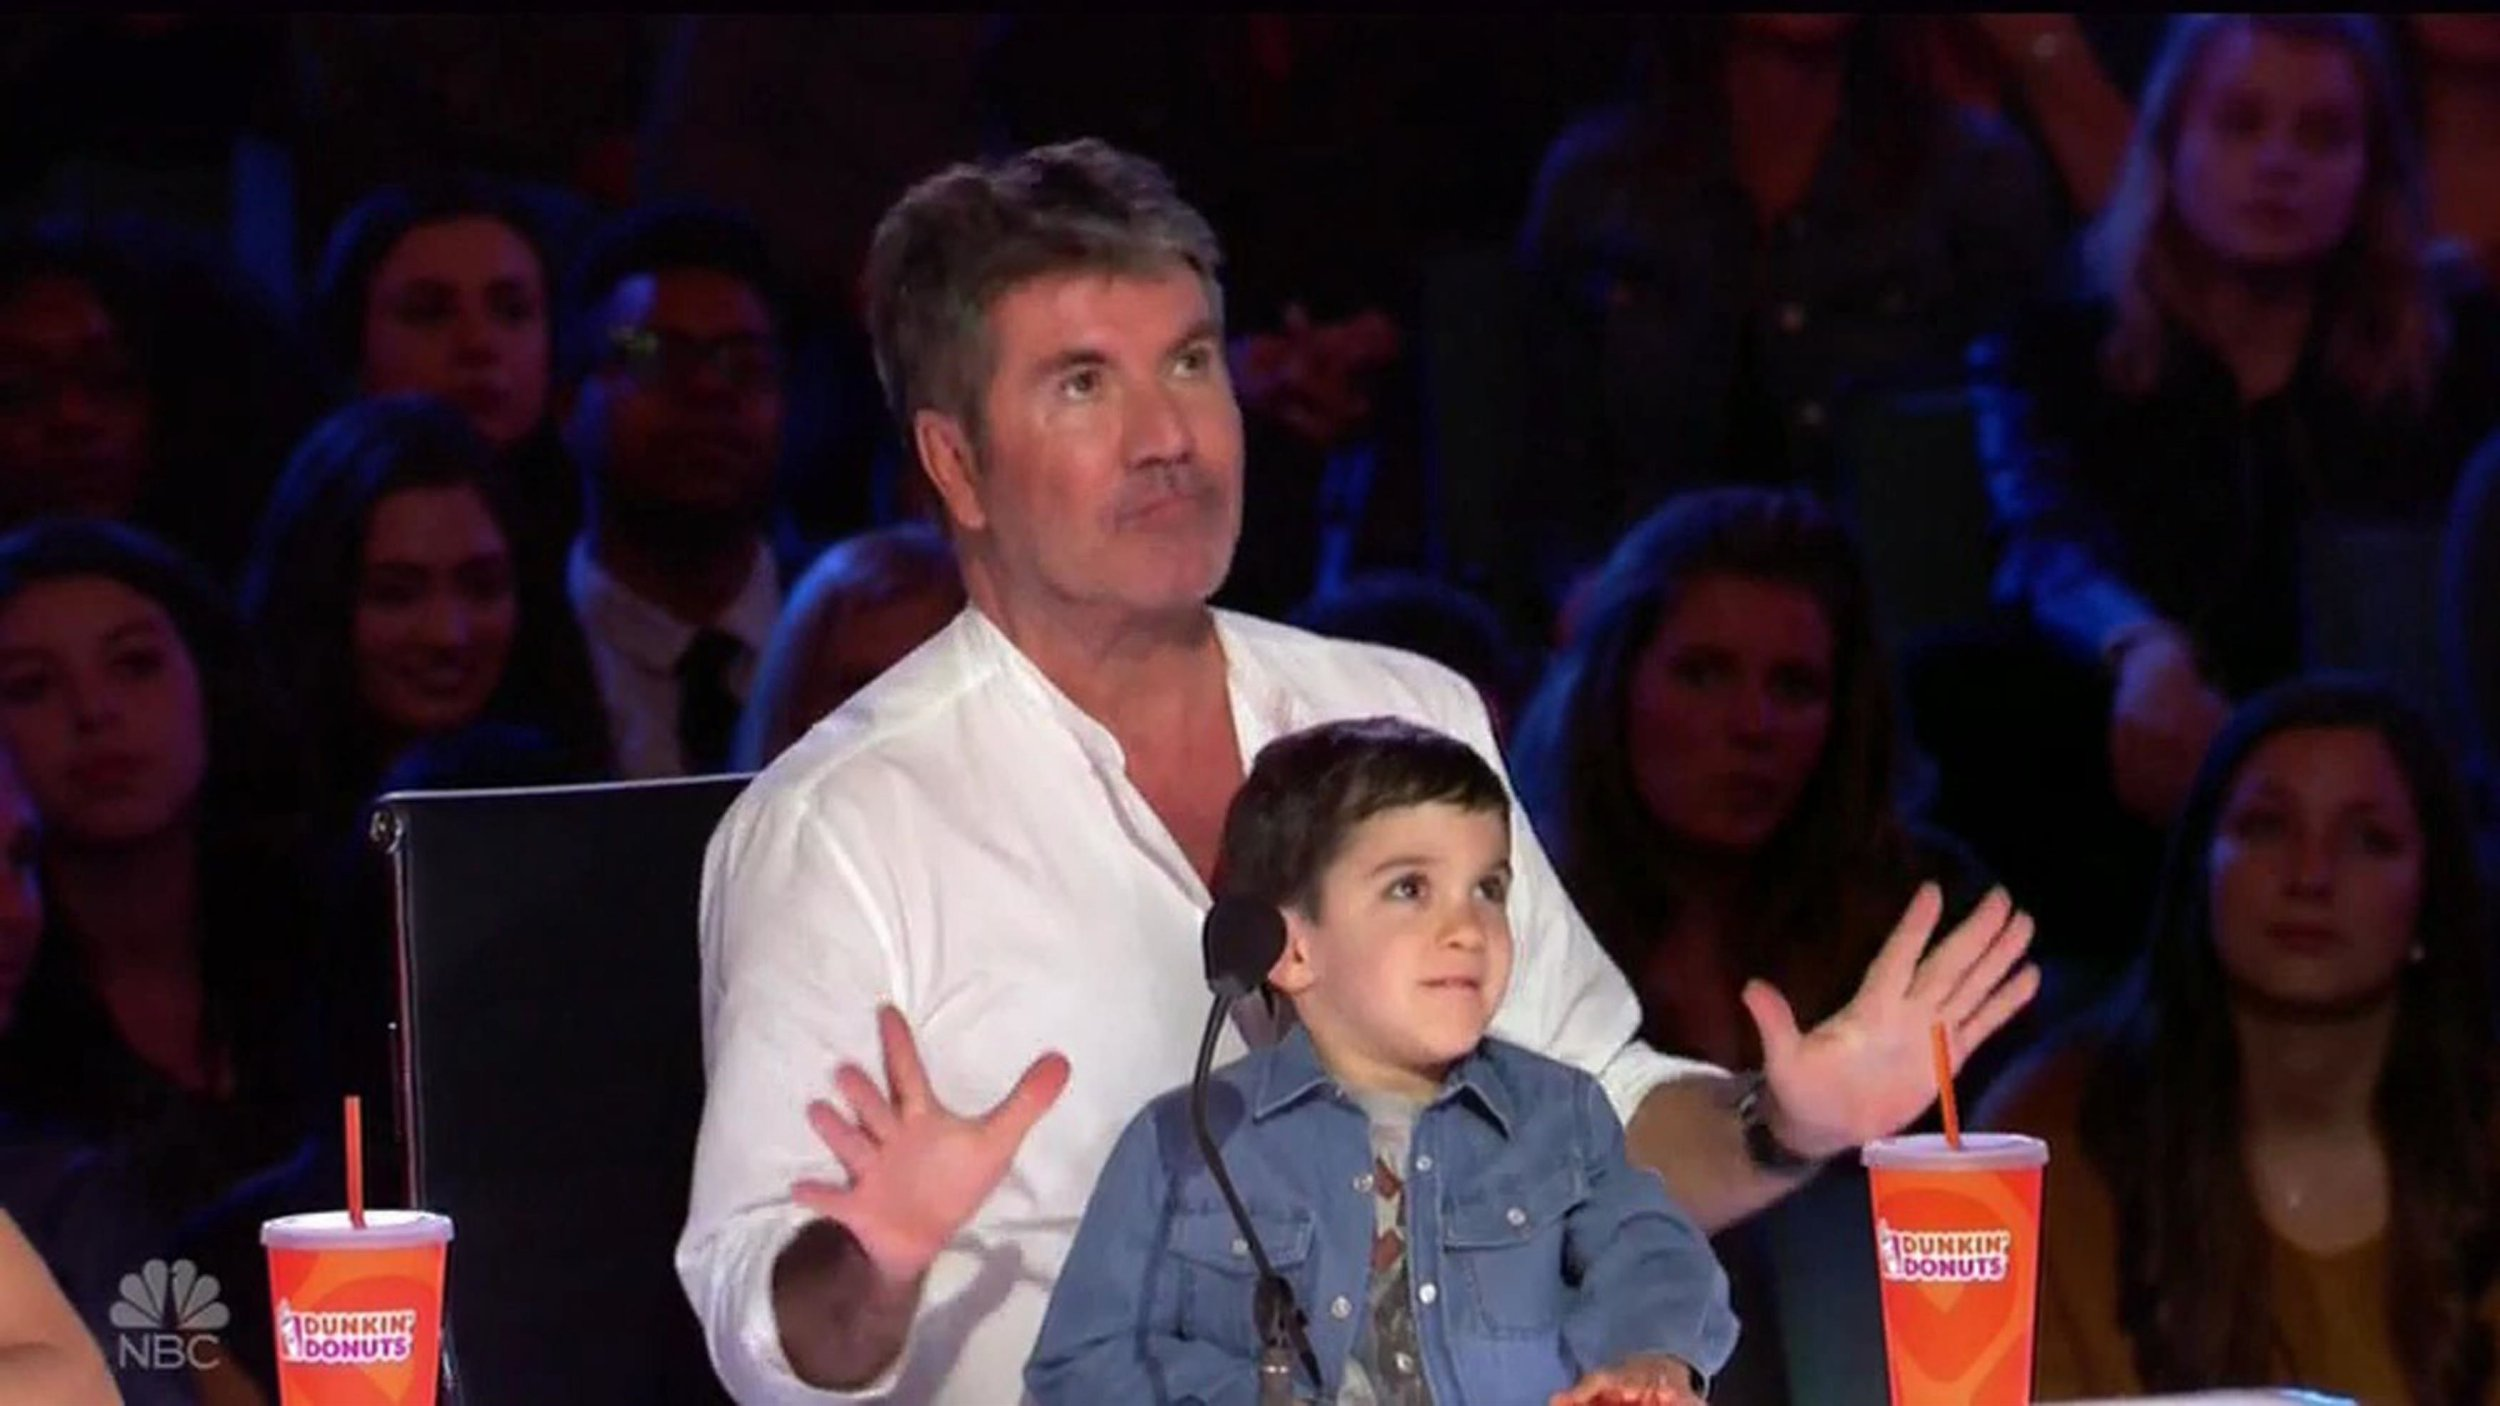 """BGUK_1261148 - ** RIGHTS: WORLDWIDE EXCEPT IN UNITED STATES ** Los Angeles, CA - Simon Cowell jokes he wants his son Eric to date five year-old America's Got Talent contestant Sophie Fatu. Sophie came out on stage with Tyra Banks - and then confidently said she had a dream that judge Simon Cowell would push his golden buzzer for her. He replied: """"Cheeky!"""" Sophie, who lives in Charleston, West Virginia, then sang Frank Sinatra???s My Way. Simon said they were not expecting that. He said he loved that song and usually older people sing it. Simon called her hilarious and said he wanted her to date his son Eric. He quipped: """"I can make an introduction,"""" as Sophie stood on the stage with her mouth open! Simon then said she was adorable while Mel B said that she was so cute and that she sung like an angel. Howie Mandel thought it was amazing and said that she was cute and talented while Heidi Klum said that Sophie should be so proud of herself. Sophie got four yes votes and was sent through to the next round. Viewers were then shown a clip of Cowell's son Eric, four, sitting on his lap before hitting the red X button as the Brit judge told the youngster: """"No, we don't buzz Sophie!"""" *BACKGRID DOES NOT CLAIM ANY COPYRIGHT OR LICENSE IN THE ATTACHED MATERIAL. ANY DOWNLOADING FEES CHARGED BY BACKGRID ARE FOR BACKGRID'S SERVICES ONLY, AND DO NOT, NOR ARE THEY INTENDED TO, CONVEY TO THE USER ANY COPYRIGHT OR LICENSE IN THE MATERIAL. BY PUBLISHING THIS MATERIAL , THE USER EXPRESSLY AGREES TO INDEMNIFY AND TO HOLD BACKGRID HARMLESS FROM ANY CLAIMS, DEMANDS, OR CAUSES OF ACTION ARISING OUT OF OR CONNECTED IN ANY WAY WITH USER'S PUBLICATION OF THE MATERIAL* Pictured: Simon Cowell, son Eric BACKGRID UK 12 JUNE 2018 BYLINE MUST READ: NBC / BACKGRID UK: +44 208 344 2007 / uksales@backgrid.com USA: +1 310 798 9111 / usasales@backgrid.com *UK Clients - Pictures Containing Children Please Pixelate Face Prior To Publication*"""